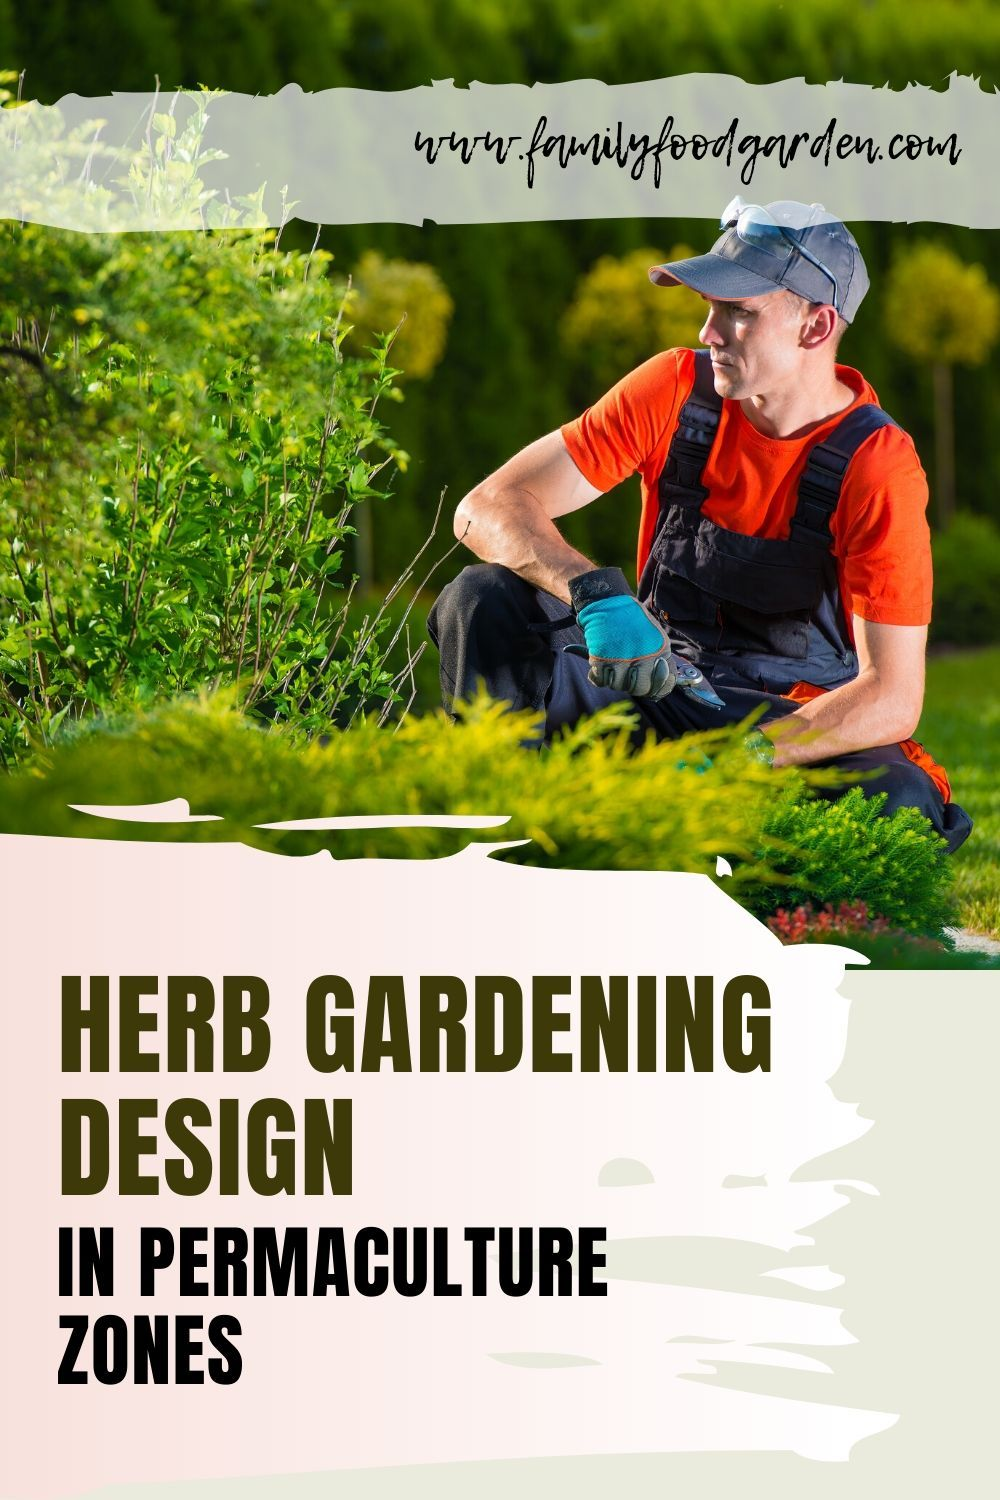 Herb Gardening Design in Permaculture Zones is part of Permaculture, Garden design, Herbs, Permaculture gardening, Permaculture design, Herb garden - Design your herb garden by growing herbs in different permaculture zones  Herb Gardening ideas and plant lists for small or large herb gardens